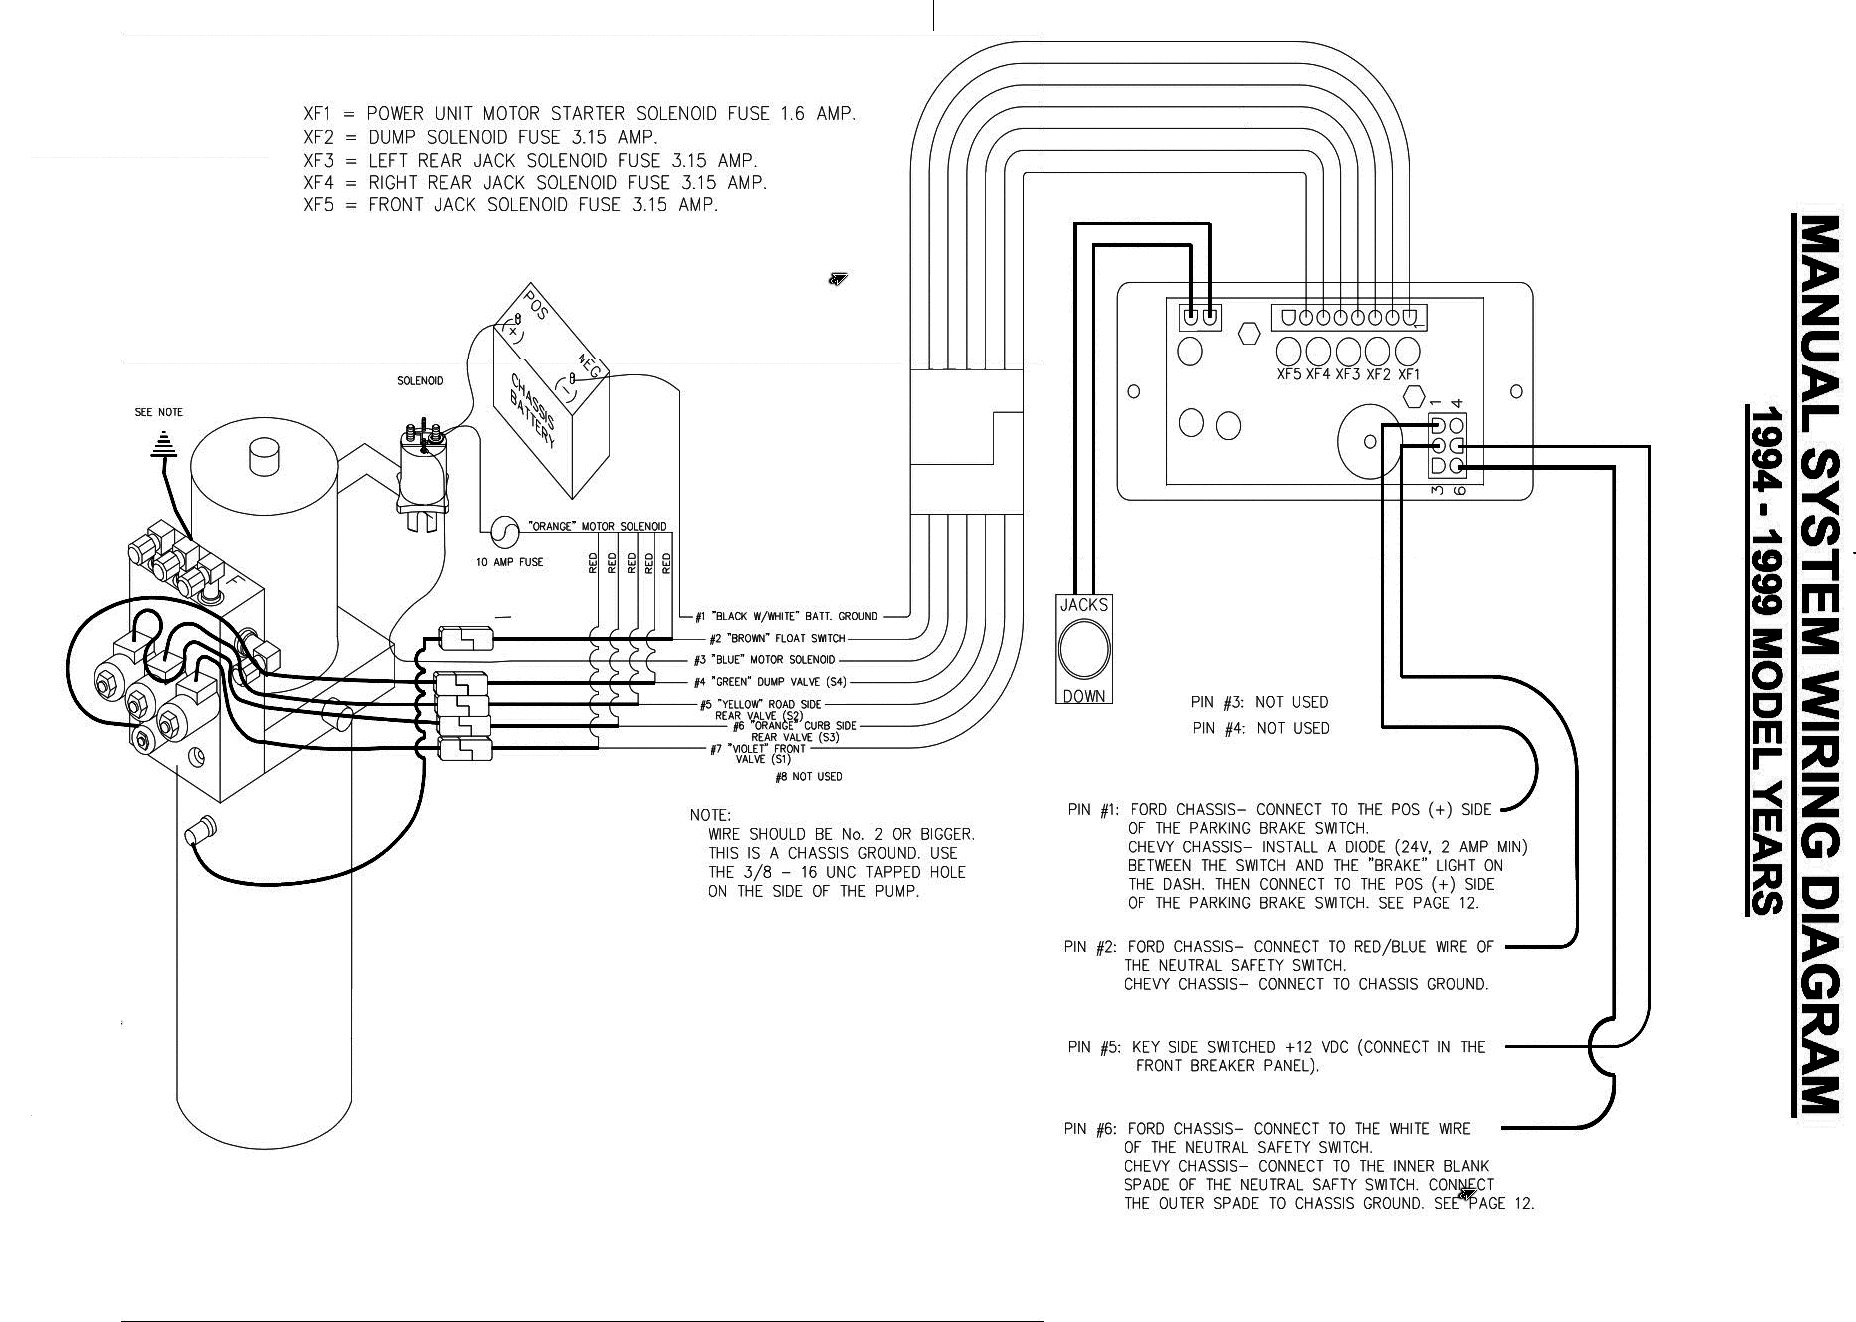 Cj7 Painless Wiring Harness Wiring Diagrams additionally Razor Electric Scooter Wiring Diagram Moreover 1998 Gmc Sonoma moreover Car Headlight Wiring Harness Diagram in addition 95 Bounder Wiring Diagram as well 23876 Dual Battery Setup. on painless wiring diagram battery